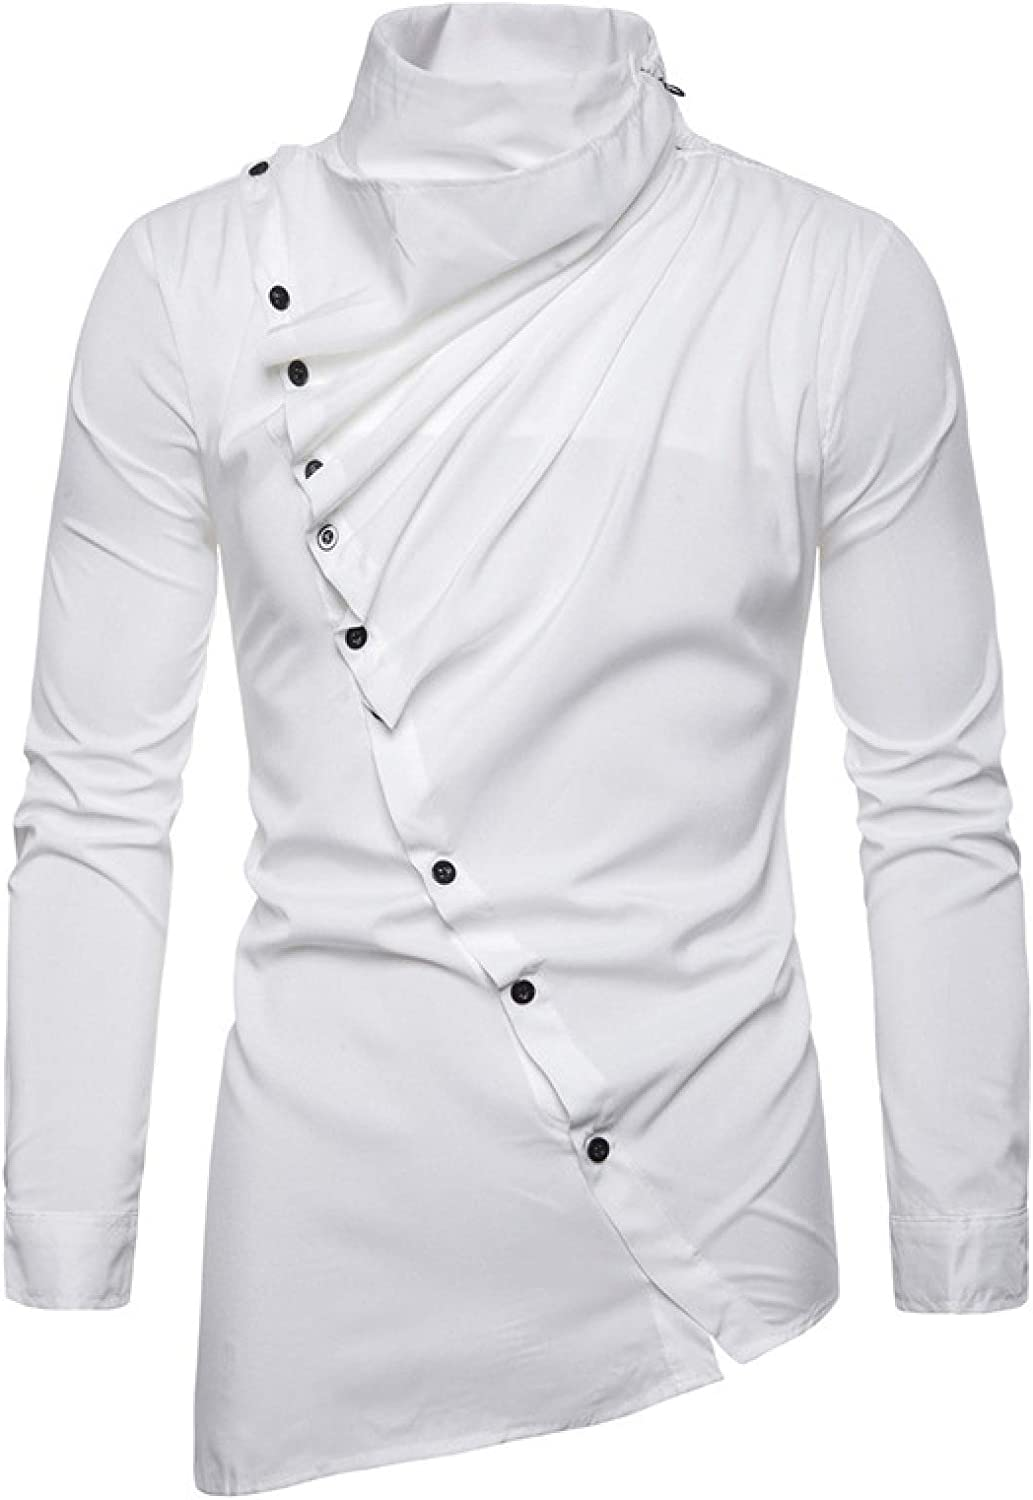 Huntrly Men's Long-Sleeved Shirts and Spring Gifts Autumn Max 69% OFF Asymmetrical